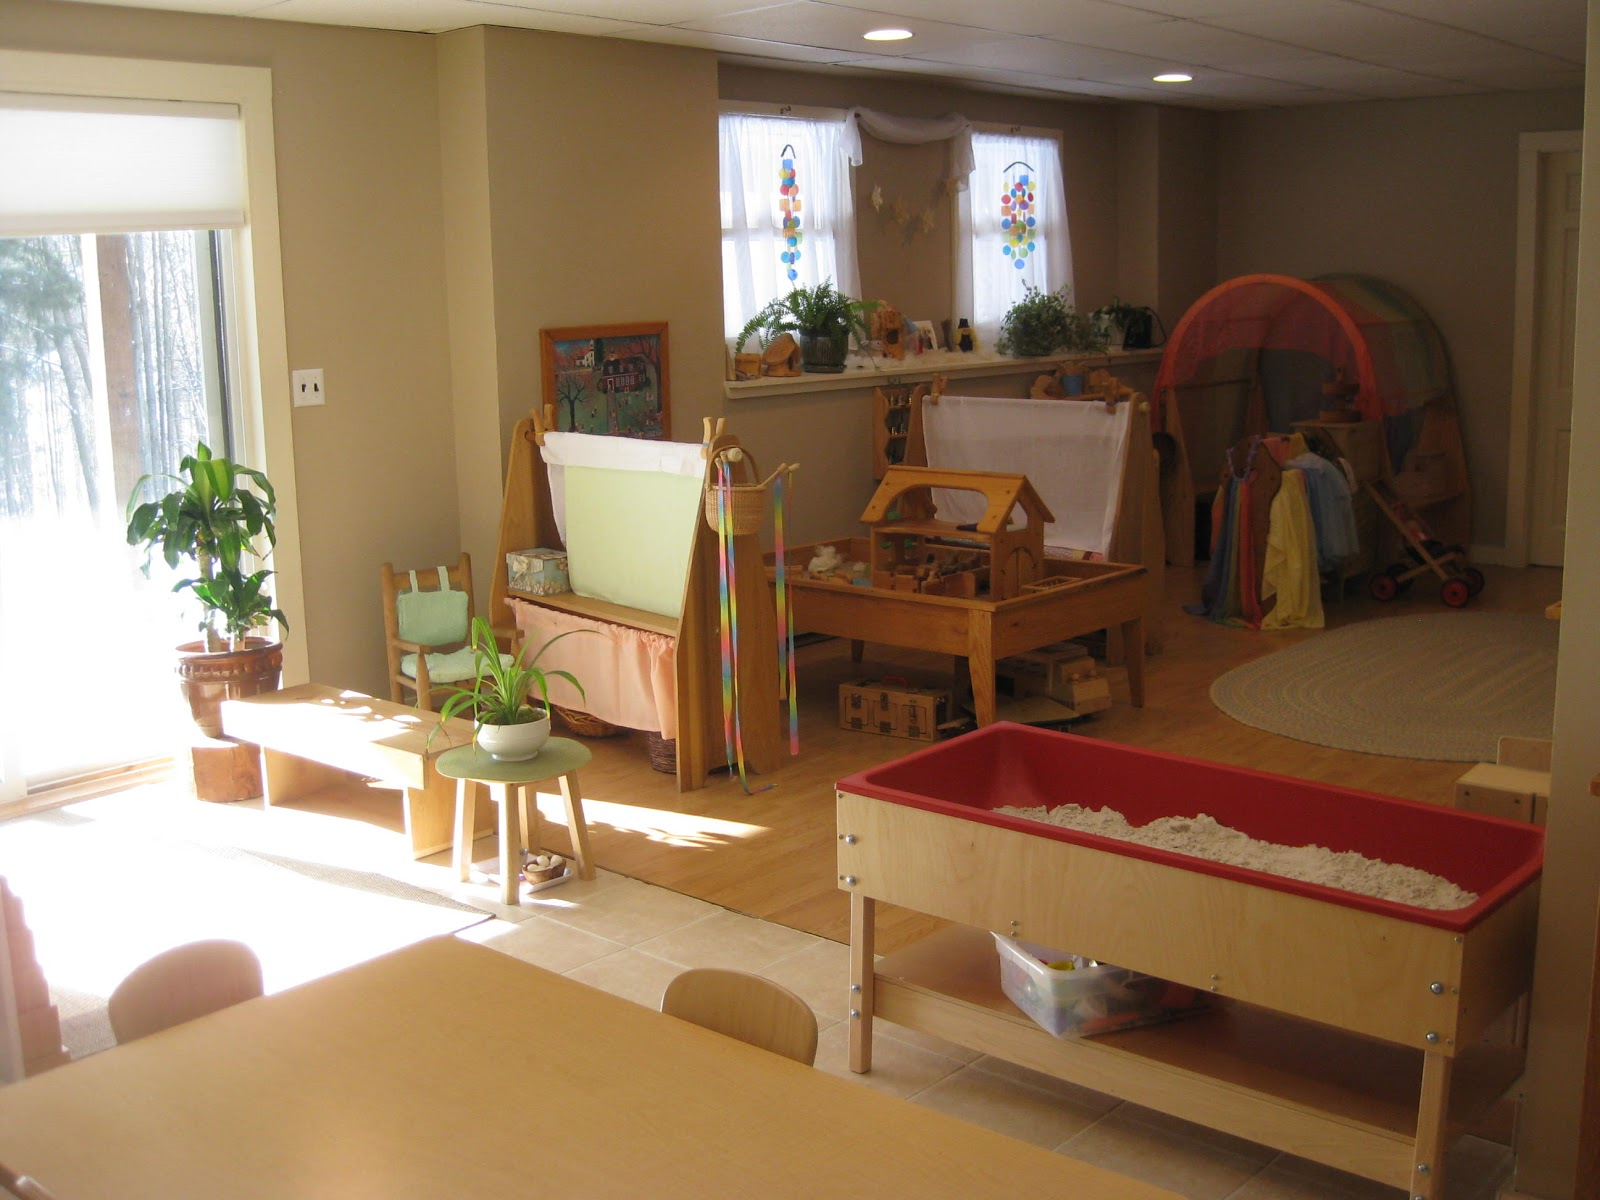 Rooms: The Wonder Years: An In-Home Childcare Room